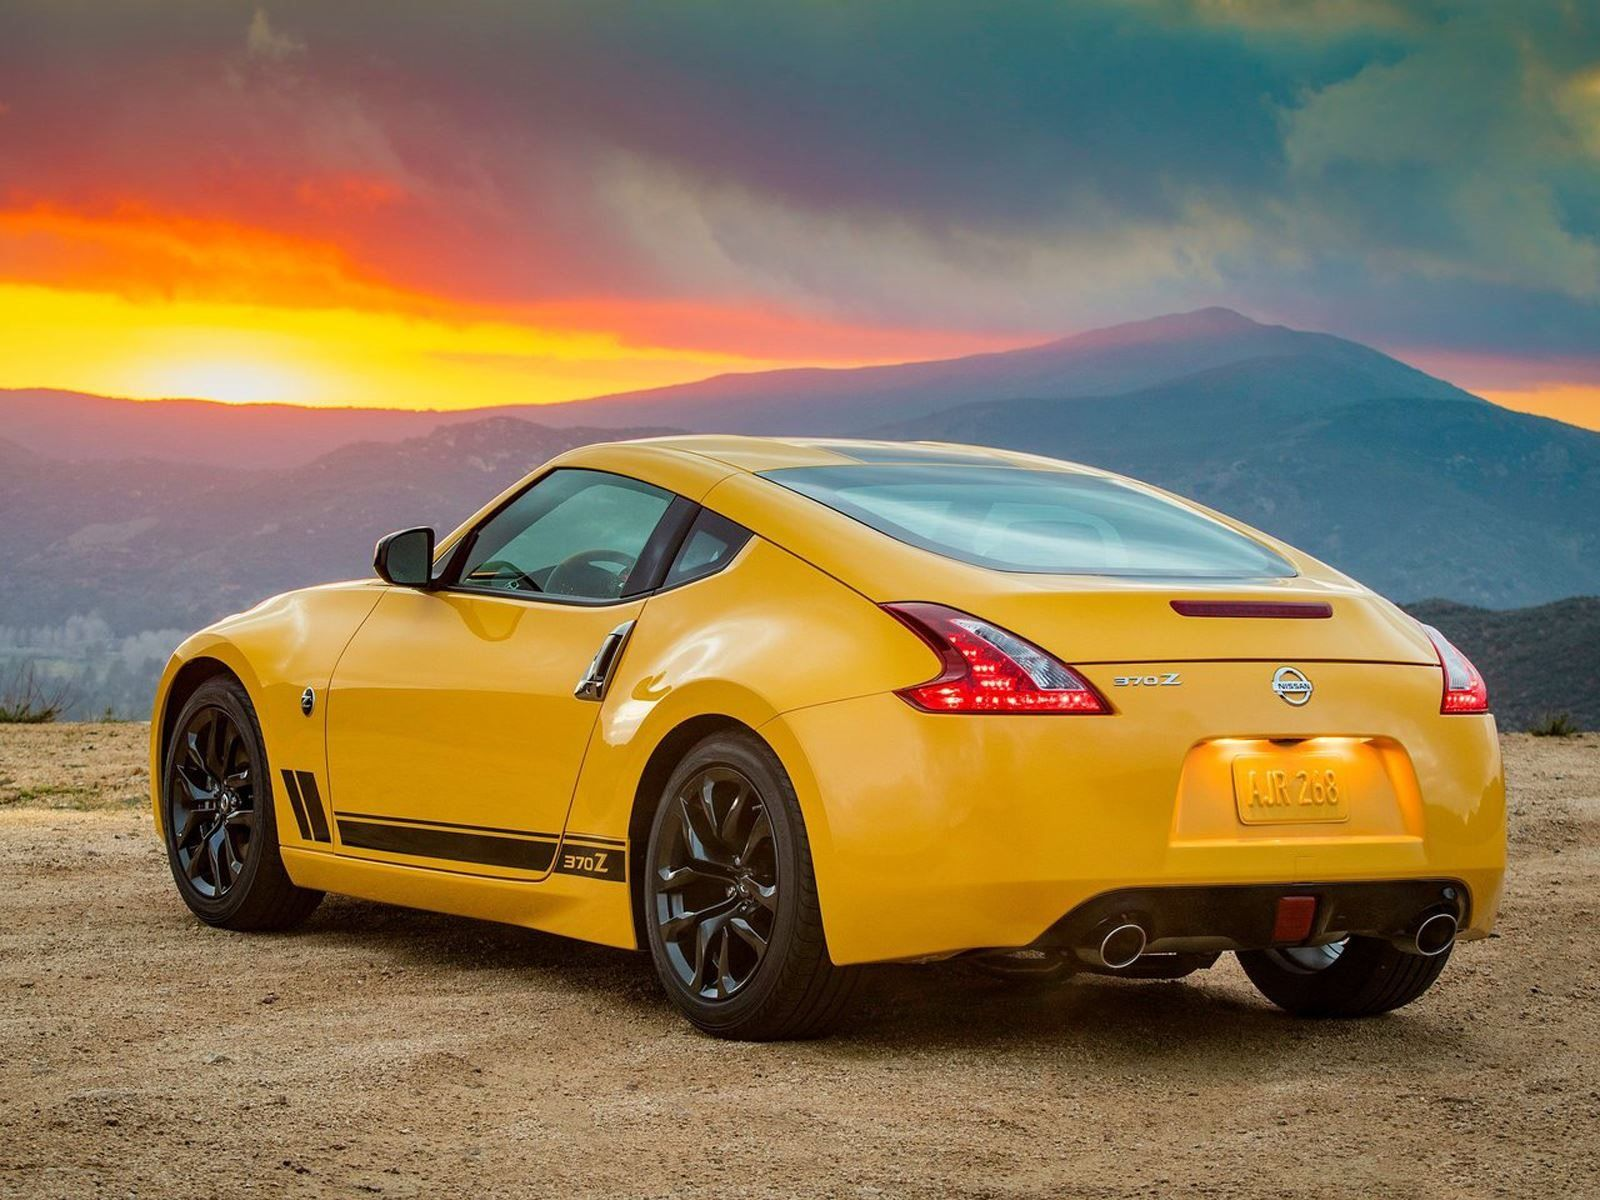 the 2019 nissan 400z will have twin turbo v6 with up to 476 hp and yes a new nismo is also planned nissan 370z nissan z cars nissan nissan 370z nissan z cars